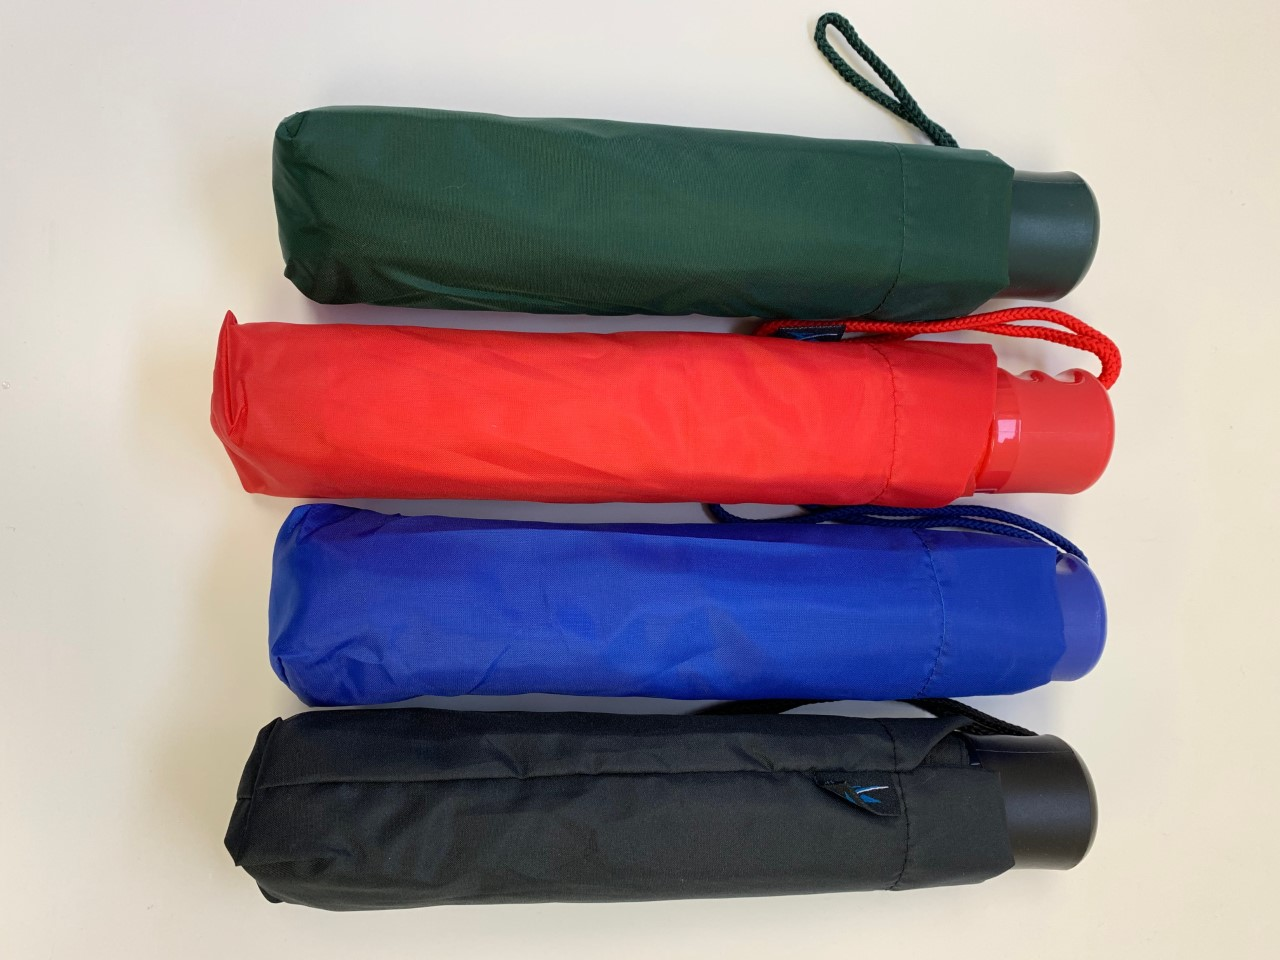 Image for the Storm Dud Mini Umbrellas in assorted colors product